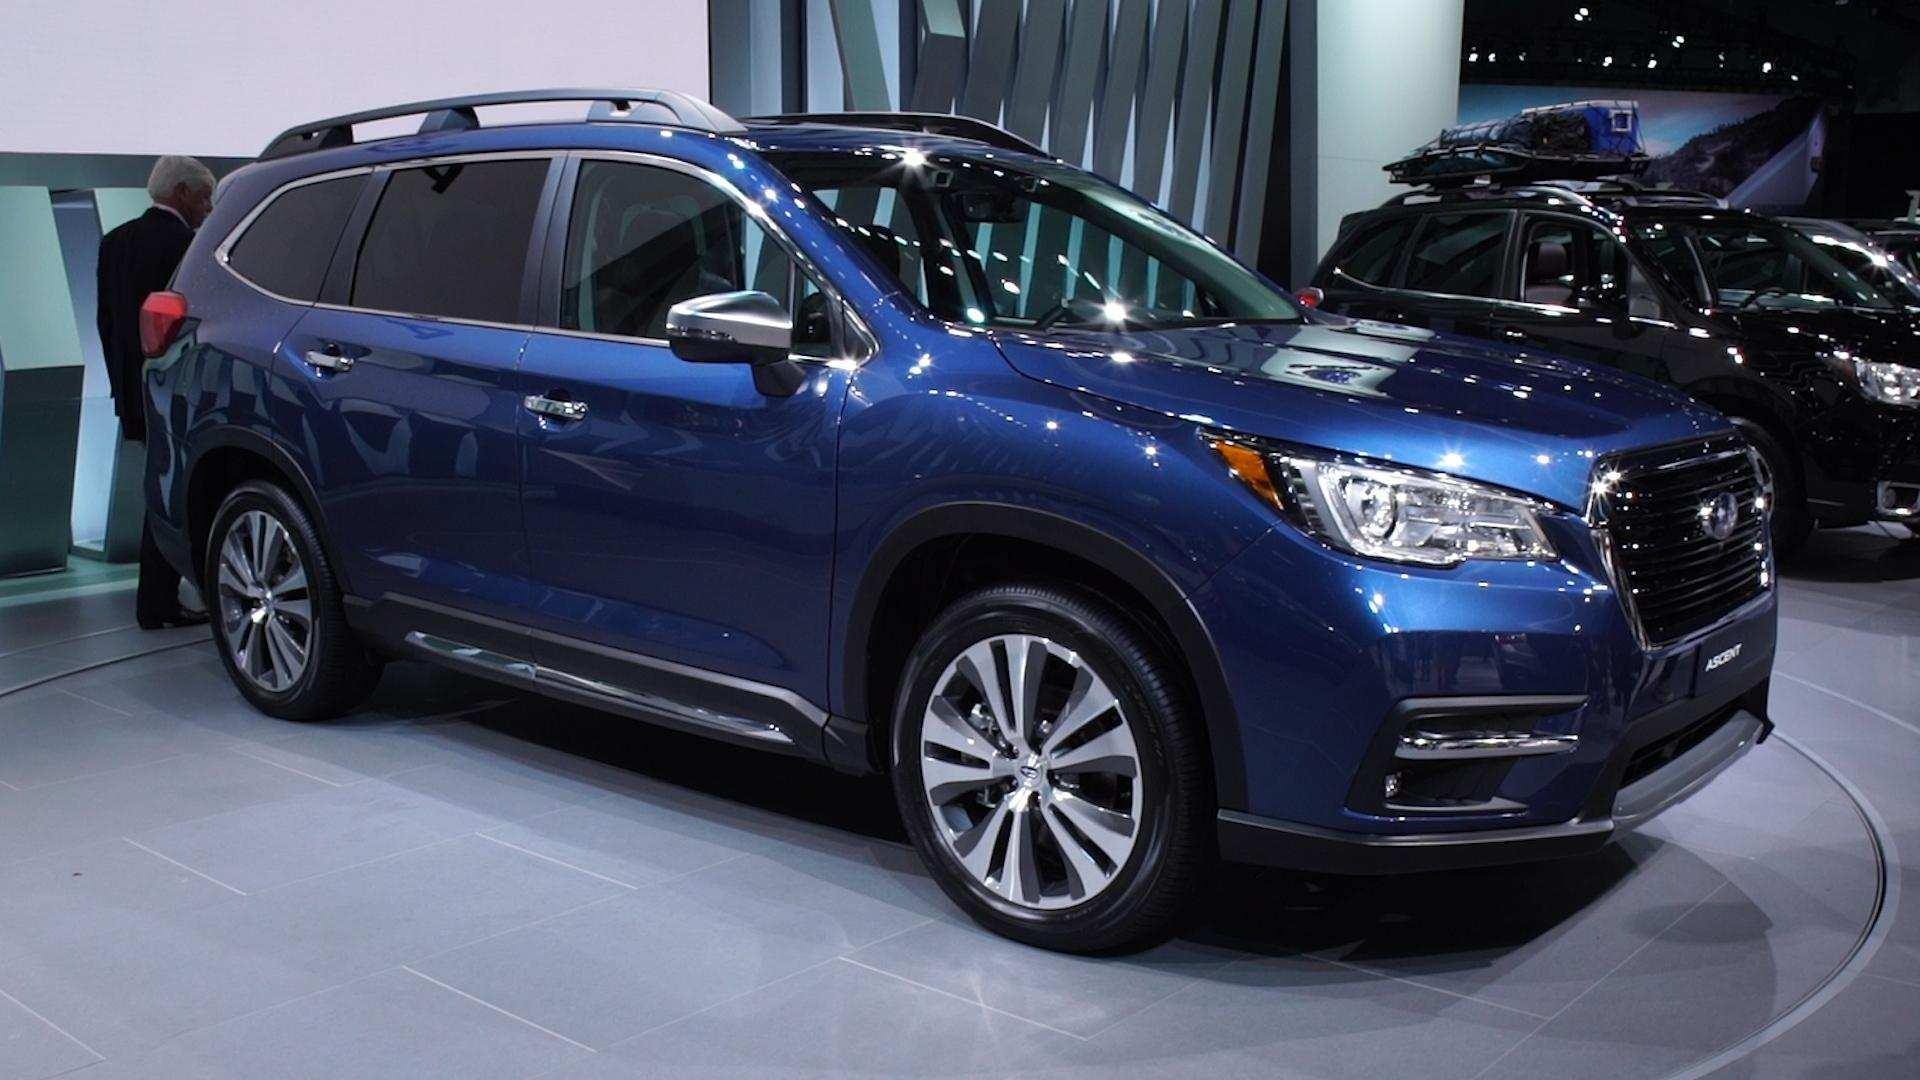 88 Best Review 2019 Subaru Ascent Video Wallpaper by 2019 Subaru Ascent Video